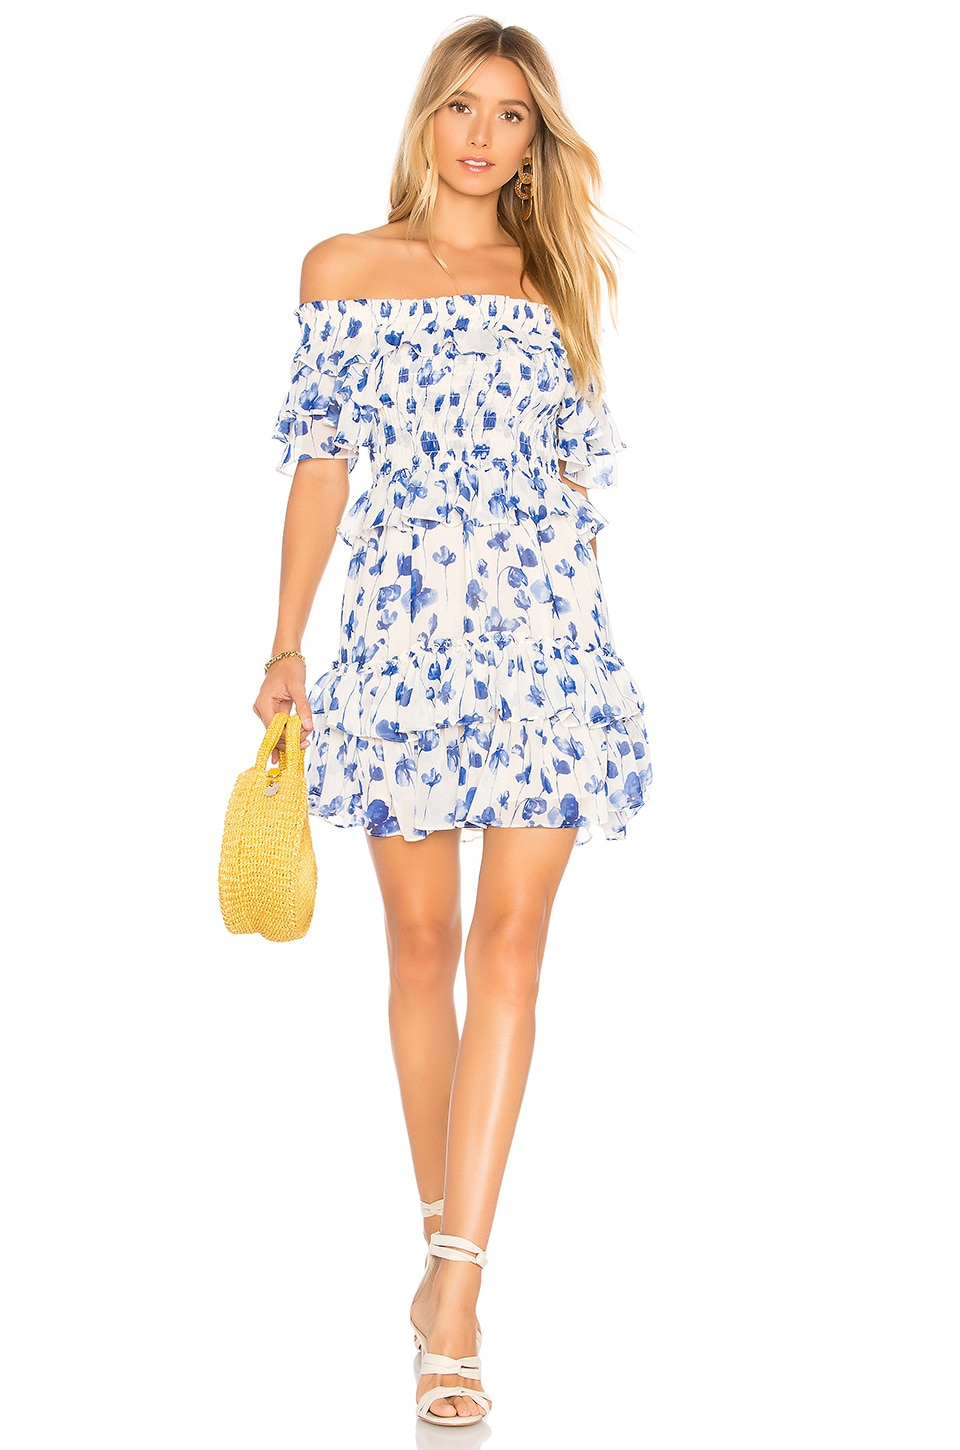 MISA Los Angeles Lilly Dress in Blue Floral